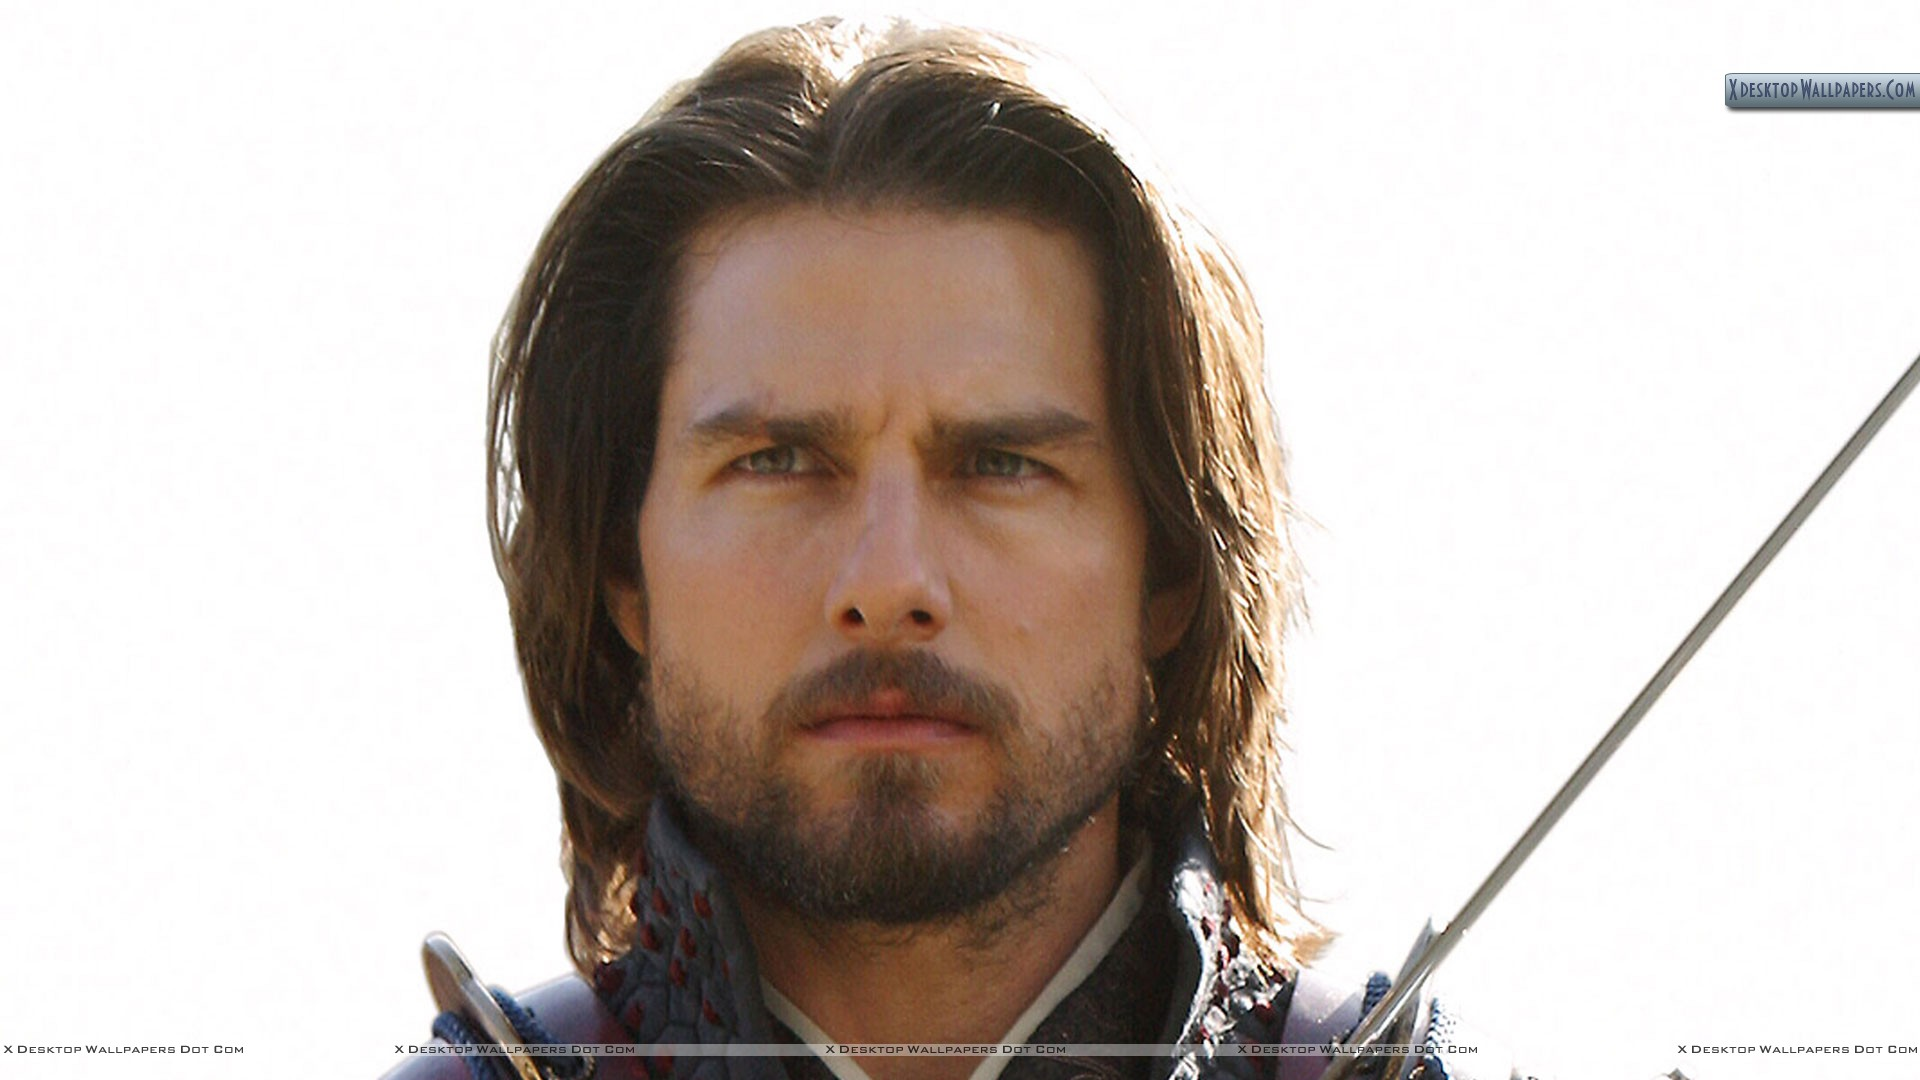 The Last Samurai Wallpapers Photos &amp Images In HD